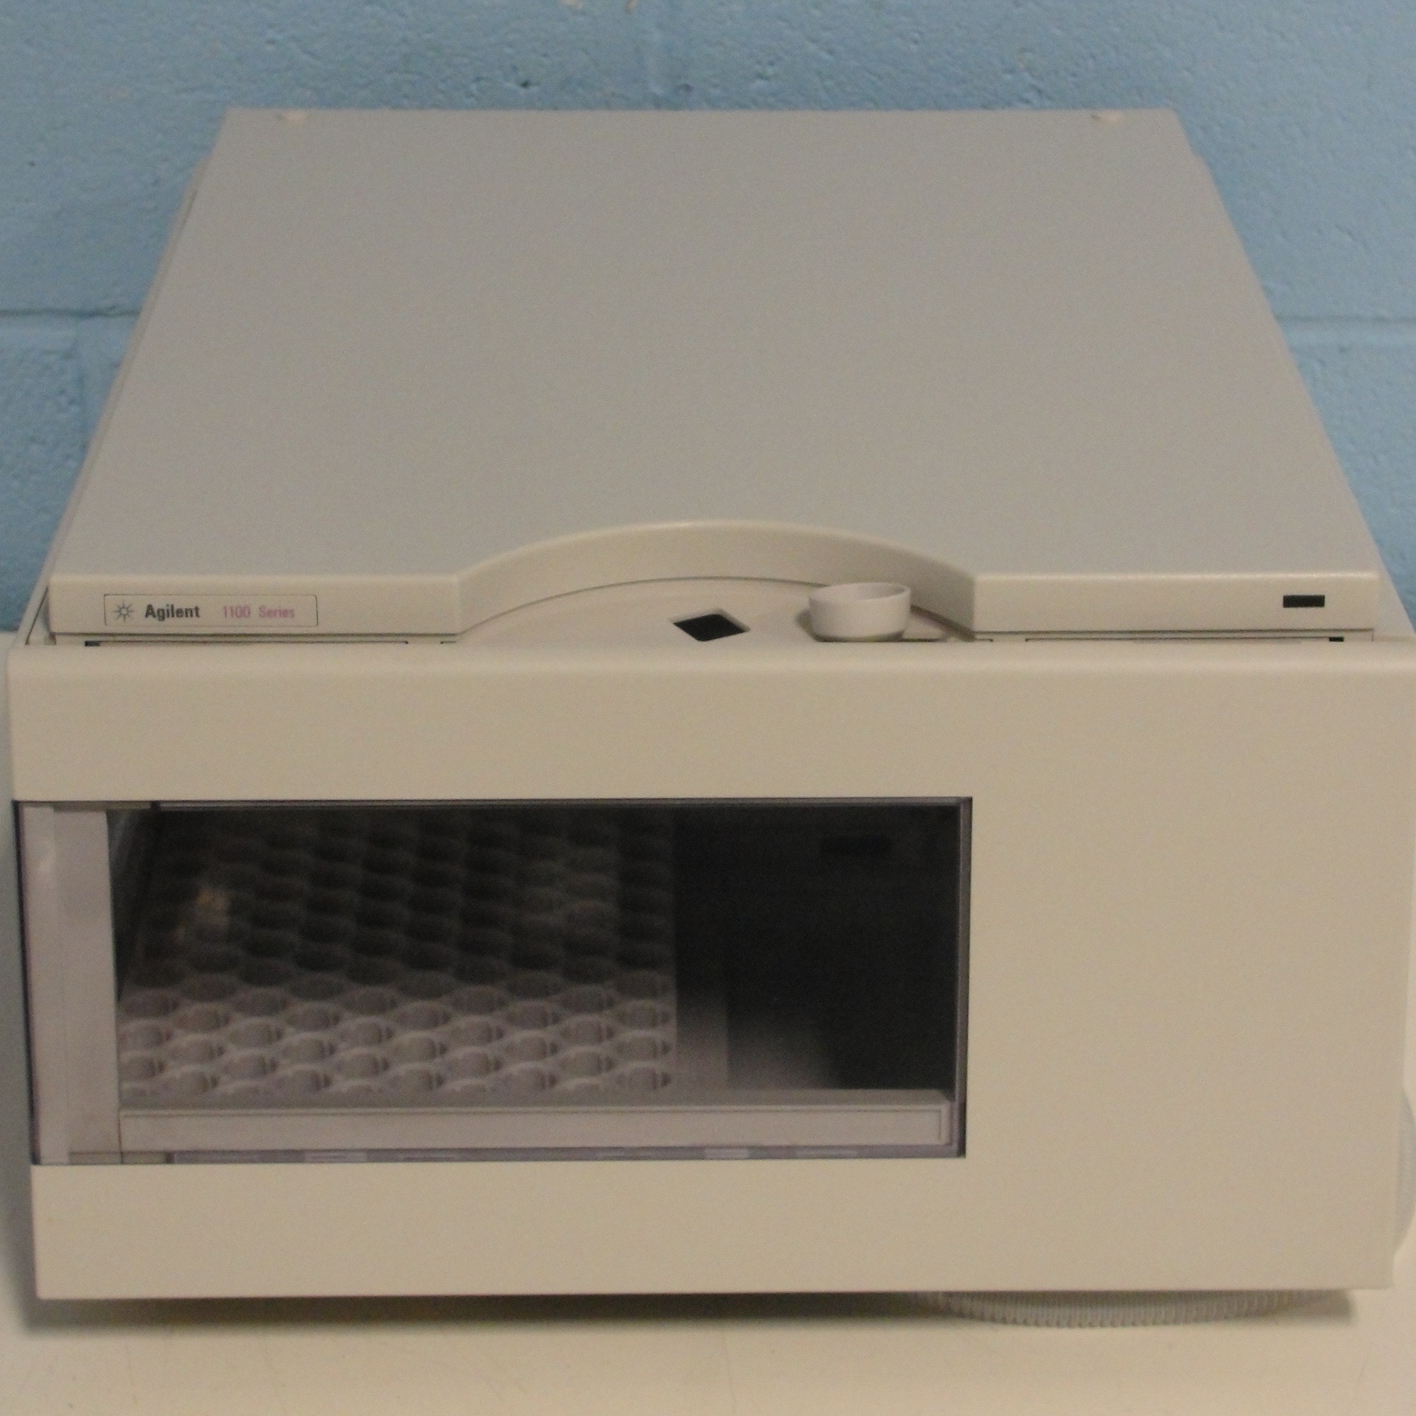 Agilent 1100 Series G1364A AFC Automatic Fraction Collector Image